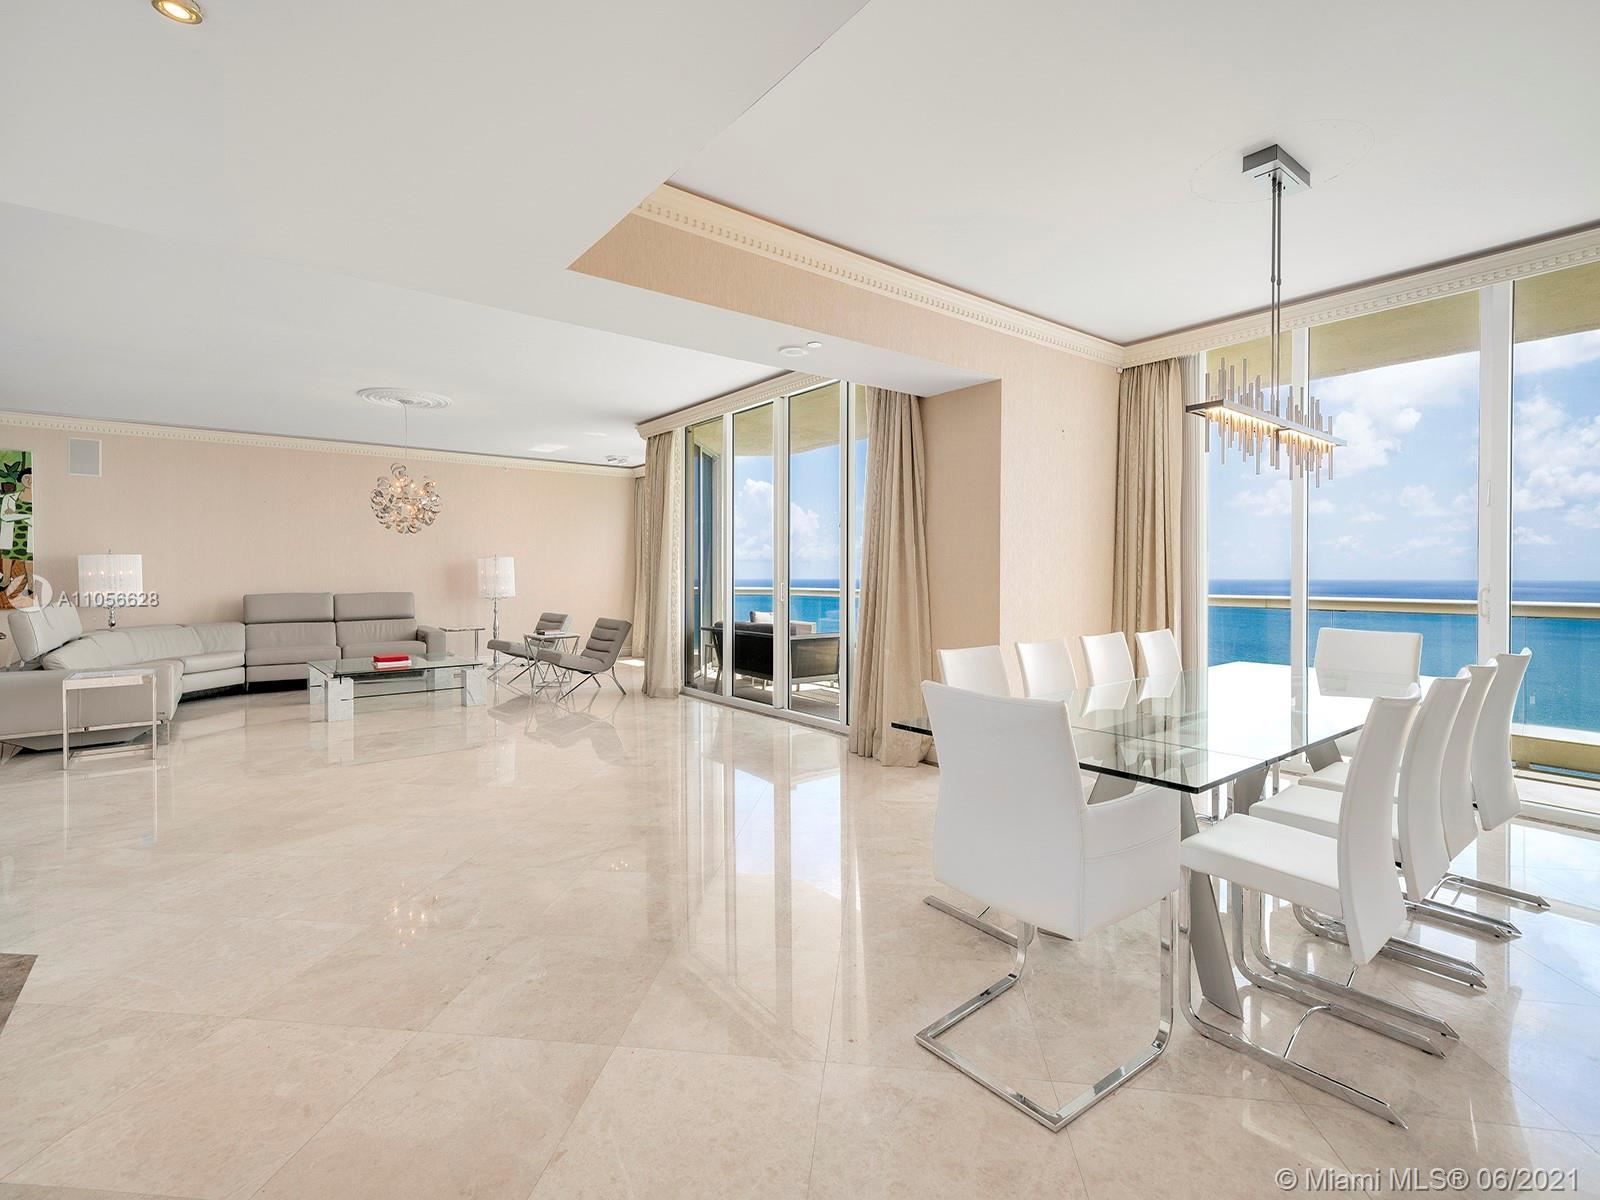 17875 Collins Ave #3703, Sunny Isles, FL 33160 - #: A11056628